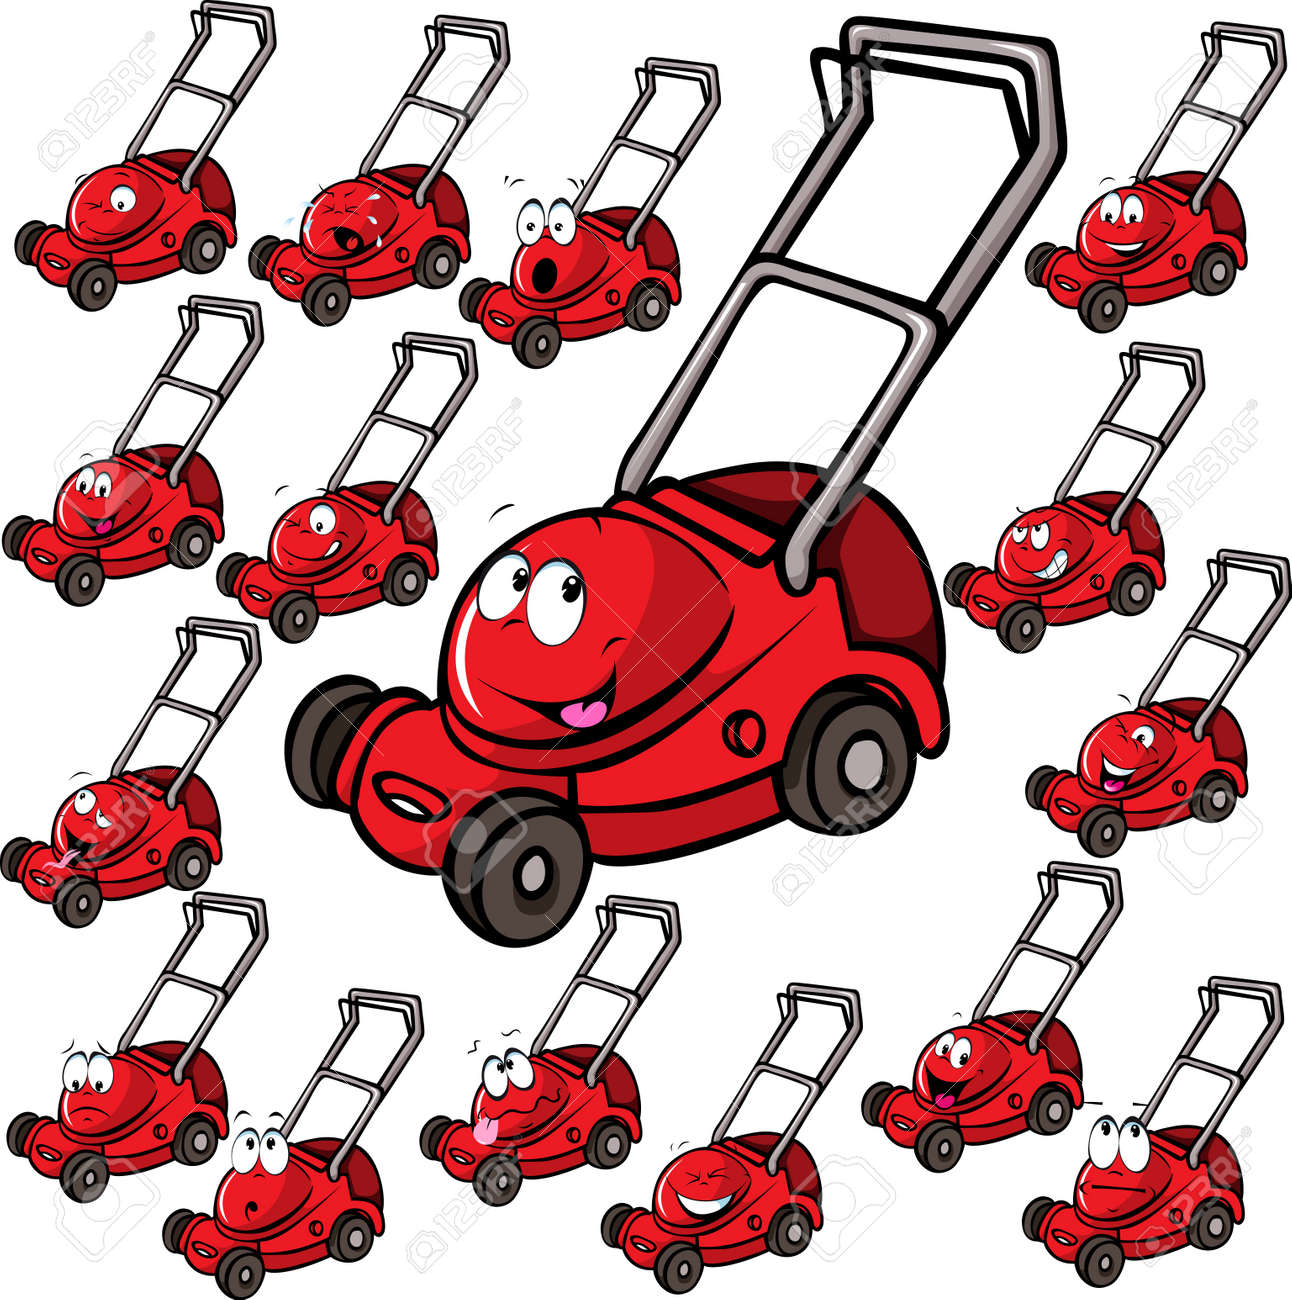 1,690 Lawn Mower Cliparts, Stock Vector And Royalty Free Lawn ...